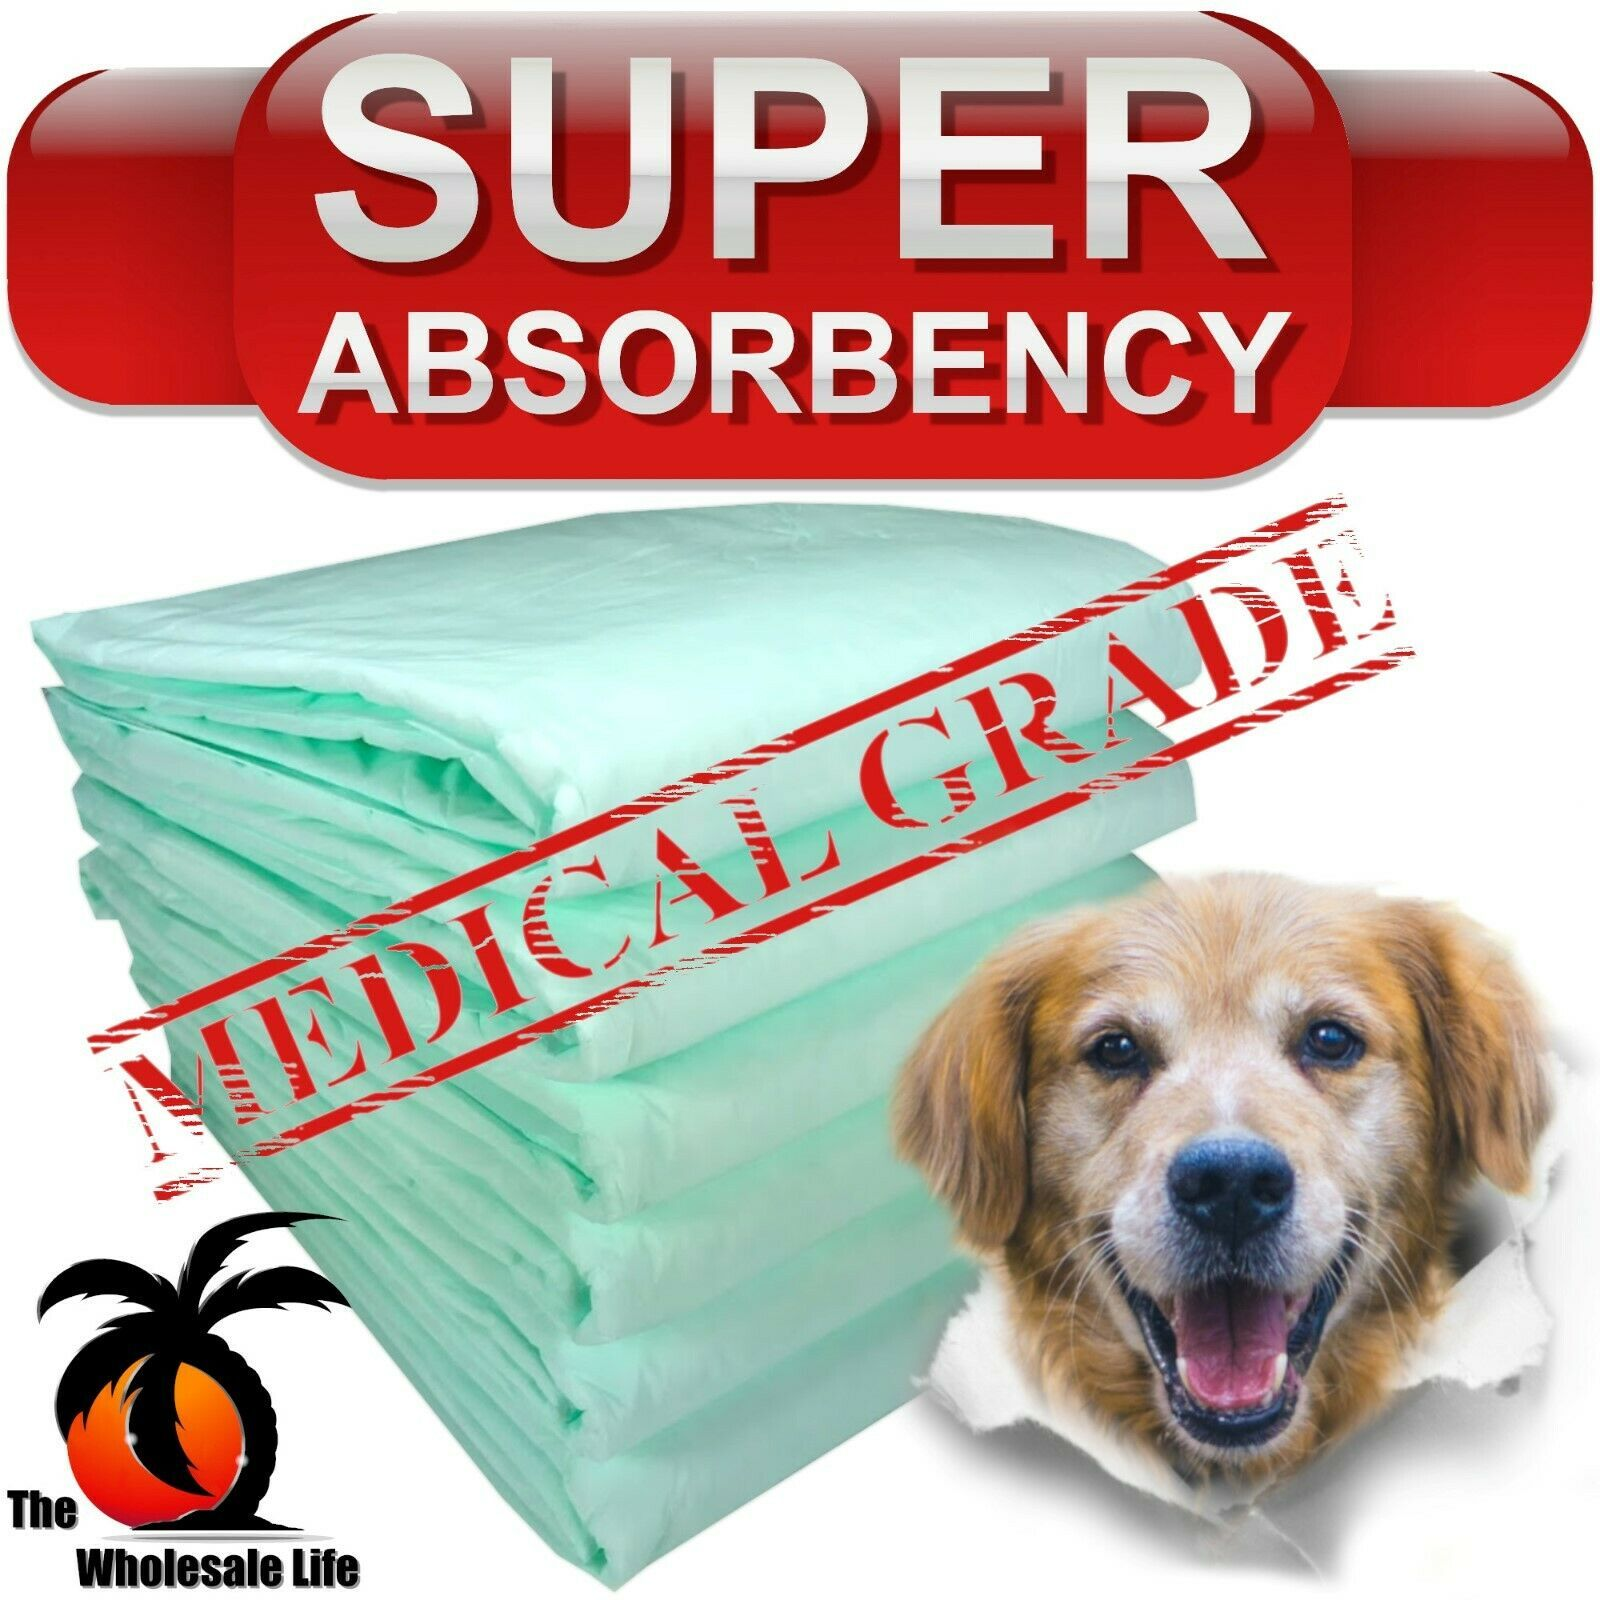 300 Dog Puppy Pads 30x30 Training Wee Wee Chux Pee Potty Housebreaking Underpads - $75.00